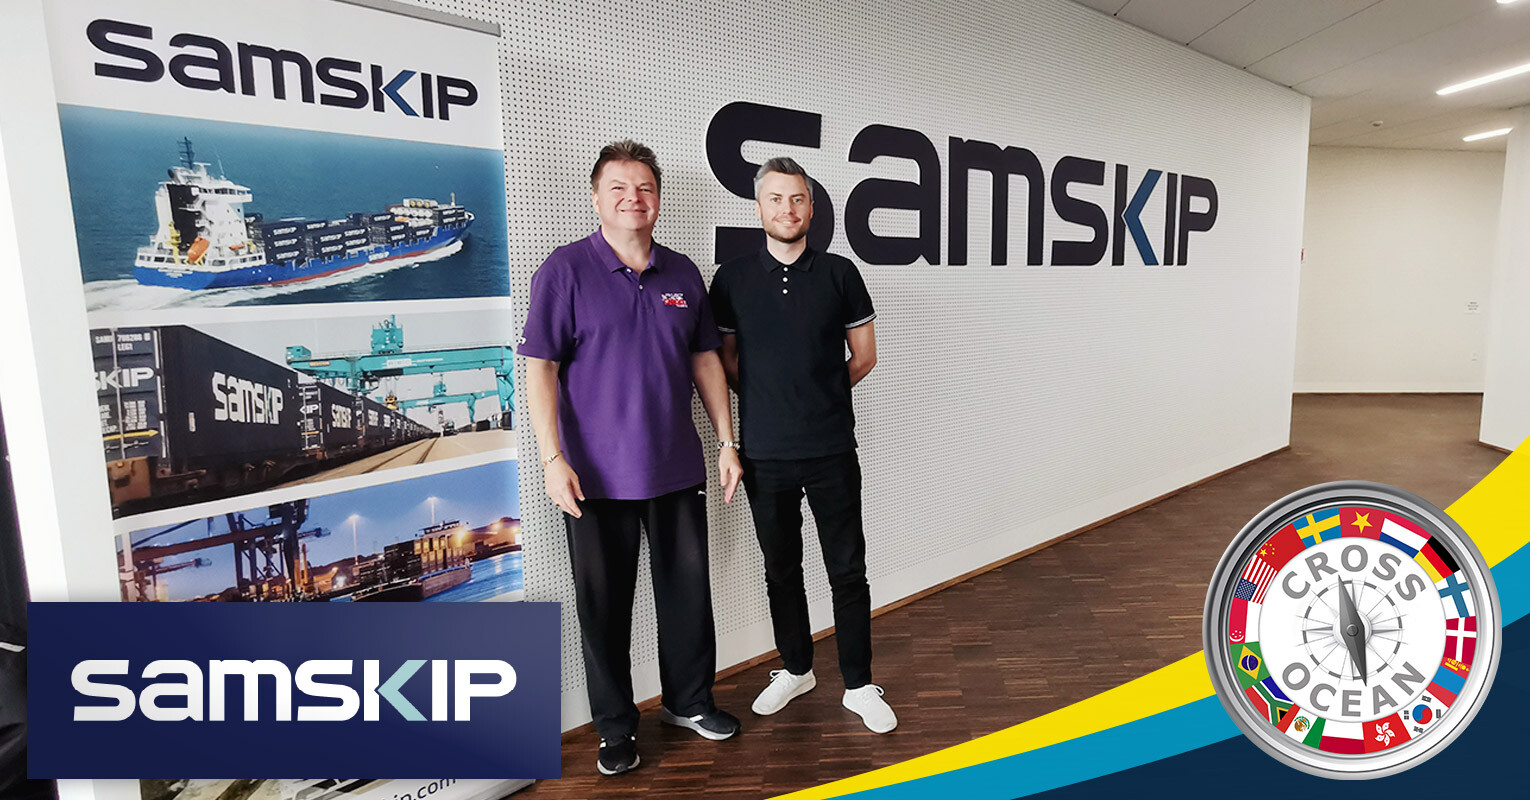 CO-and-member-in-DenmarkIceland-Samskip-at-Aarhus,-Denmark-today